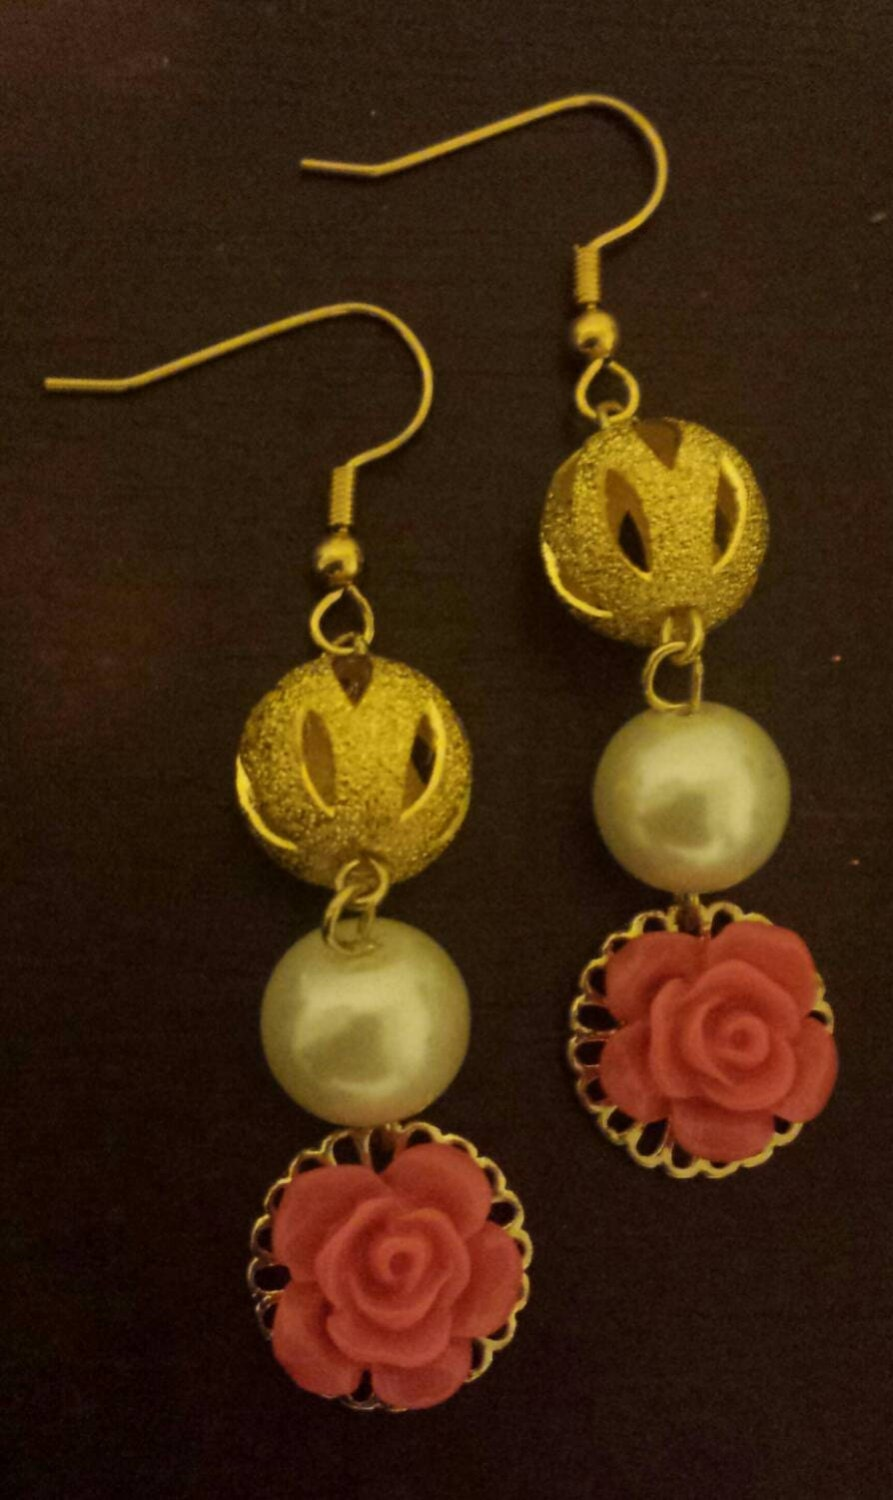 Dangle Gold Earrings Rose Dangle Earrings Pearl Dangle Earrings Bridal Dangle Earrings Bridal Party Earrings Gifts for Her